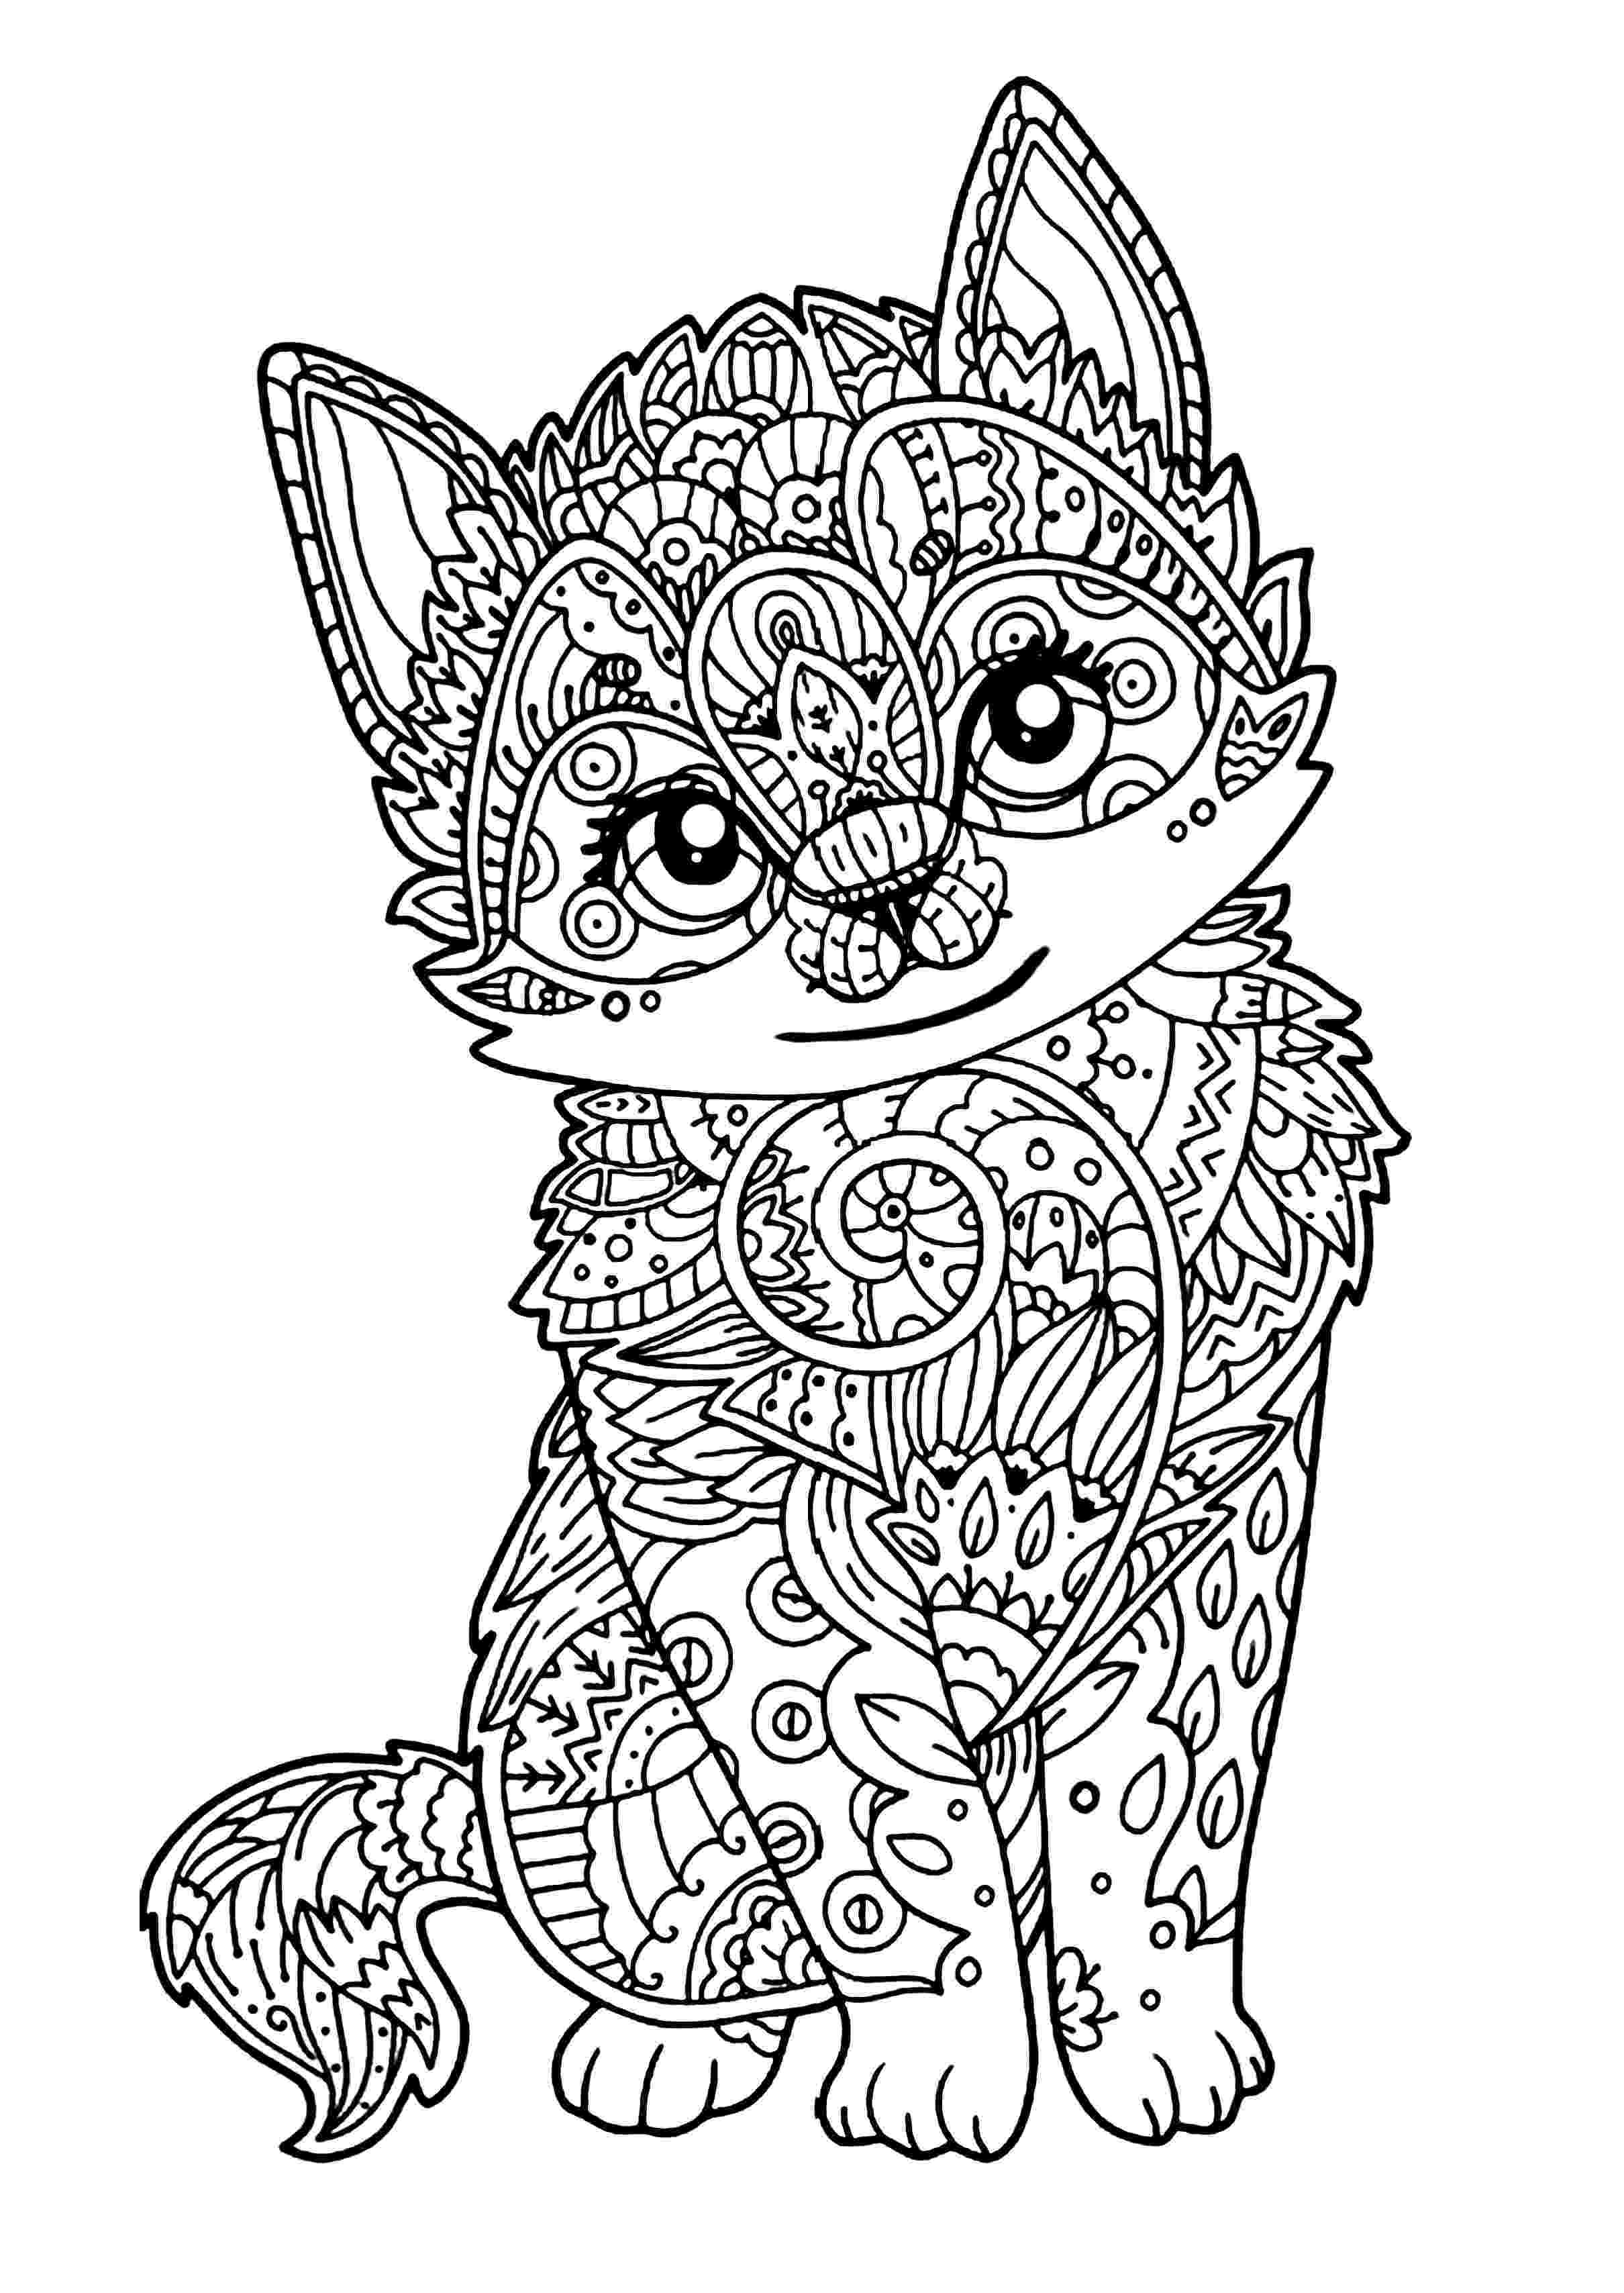 coloring pictures of kittens cute kitten printable coloring pages coloring home pictures kittens of coloring